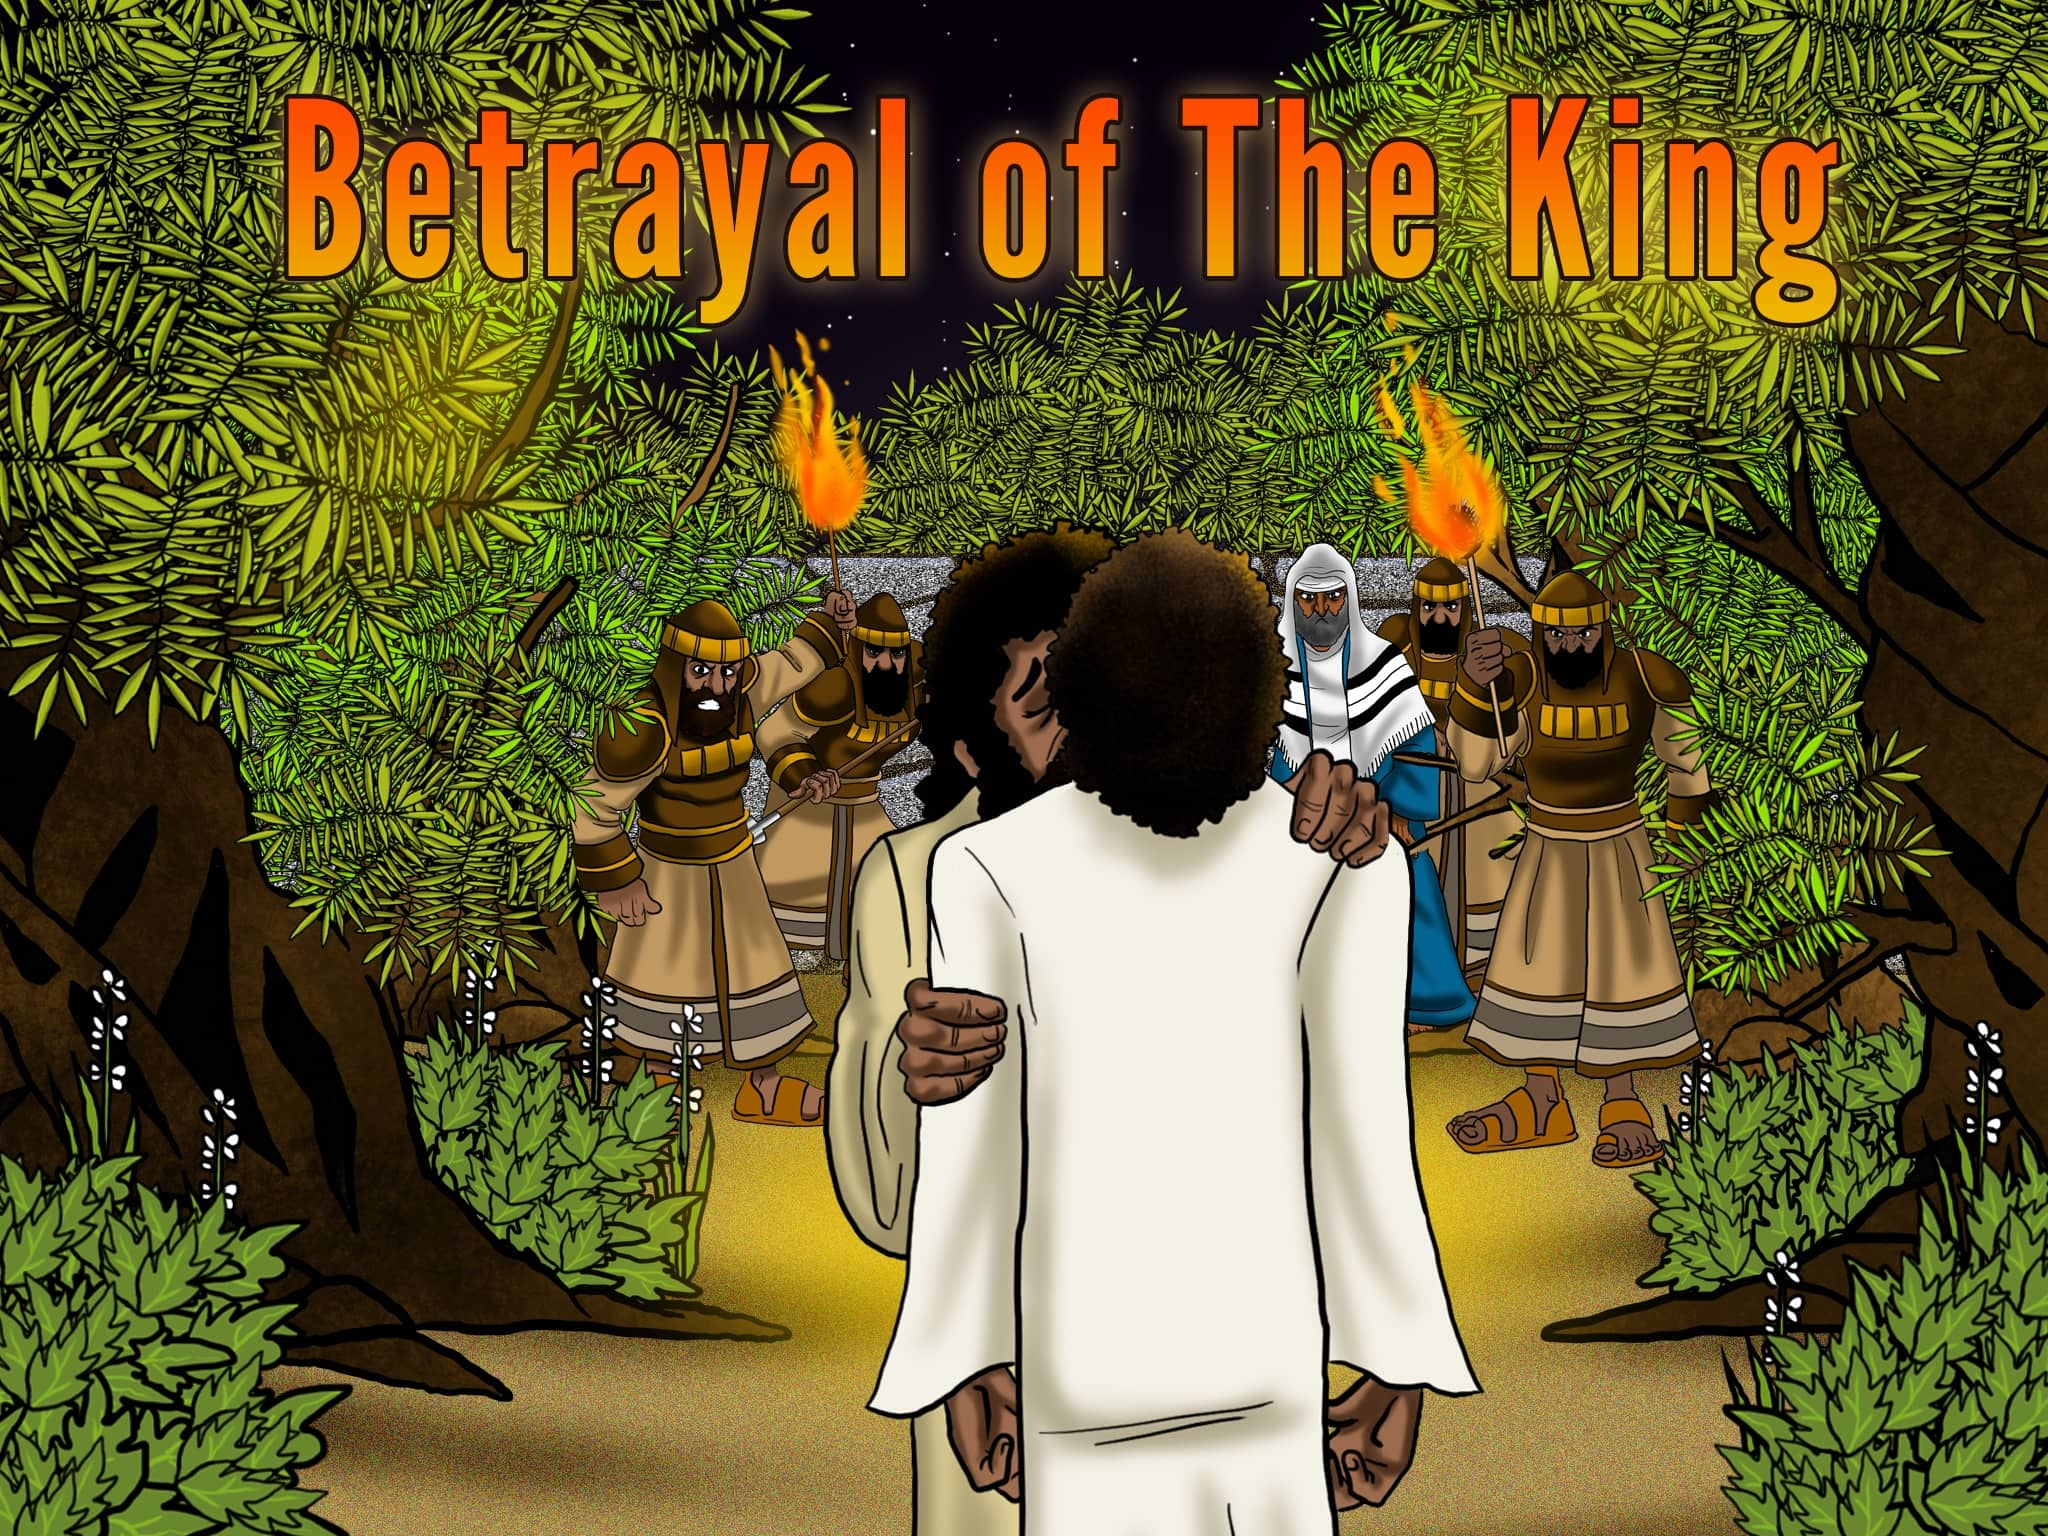 Bible Story Video Betrayal Of The King